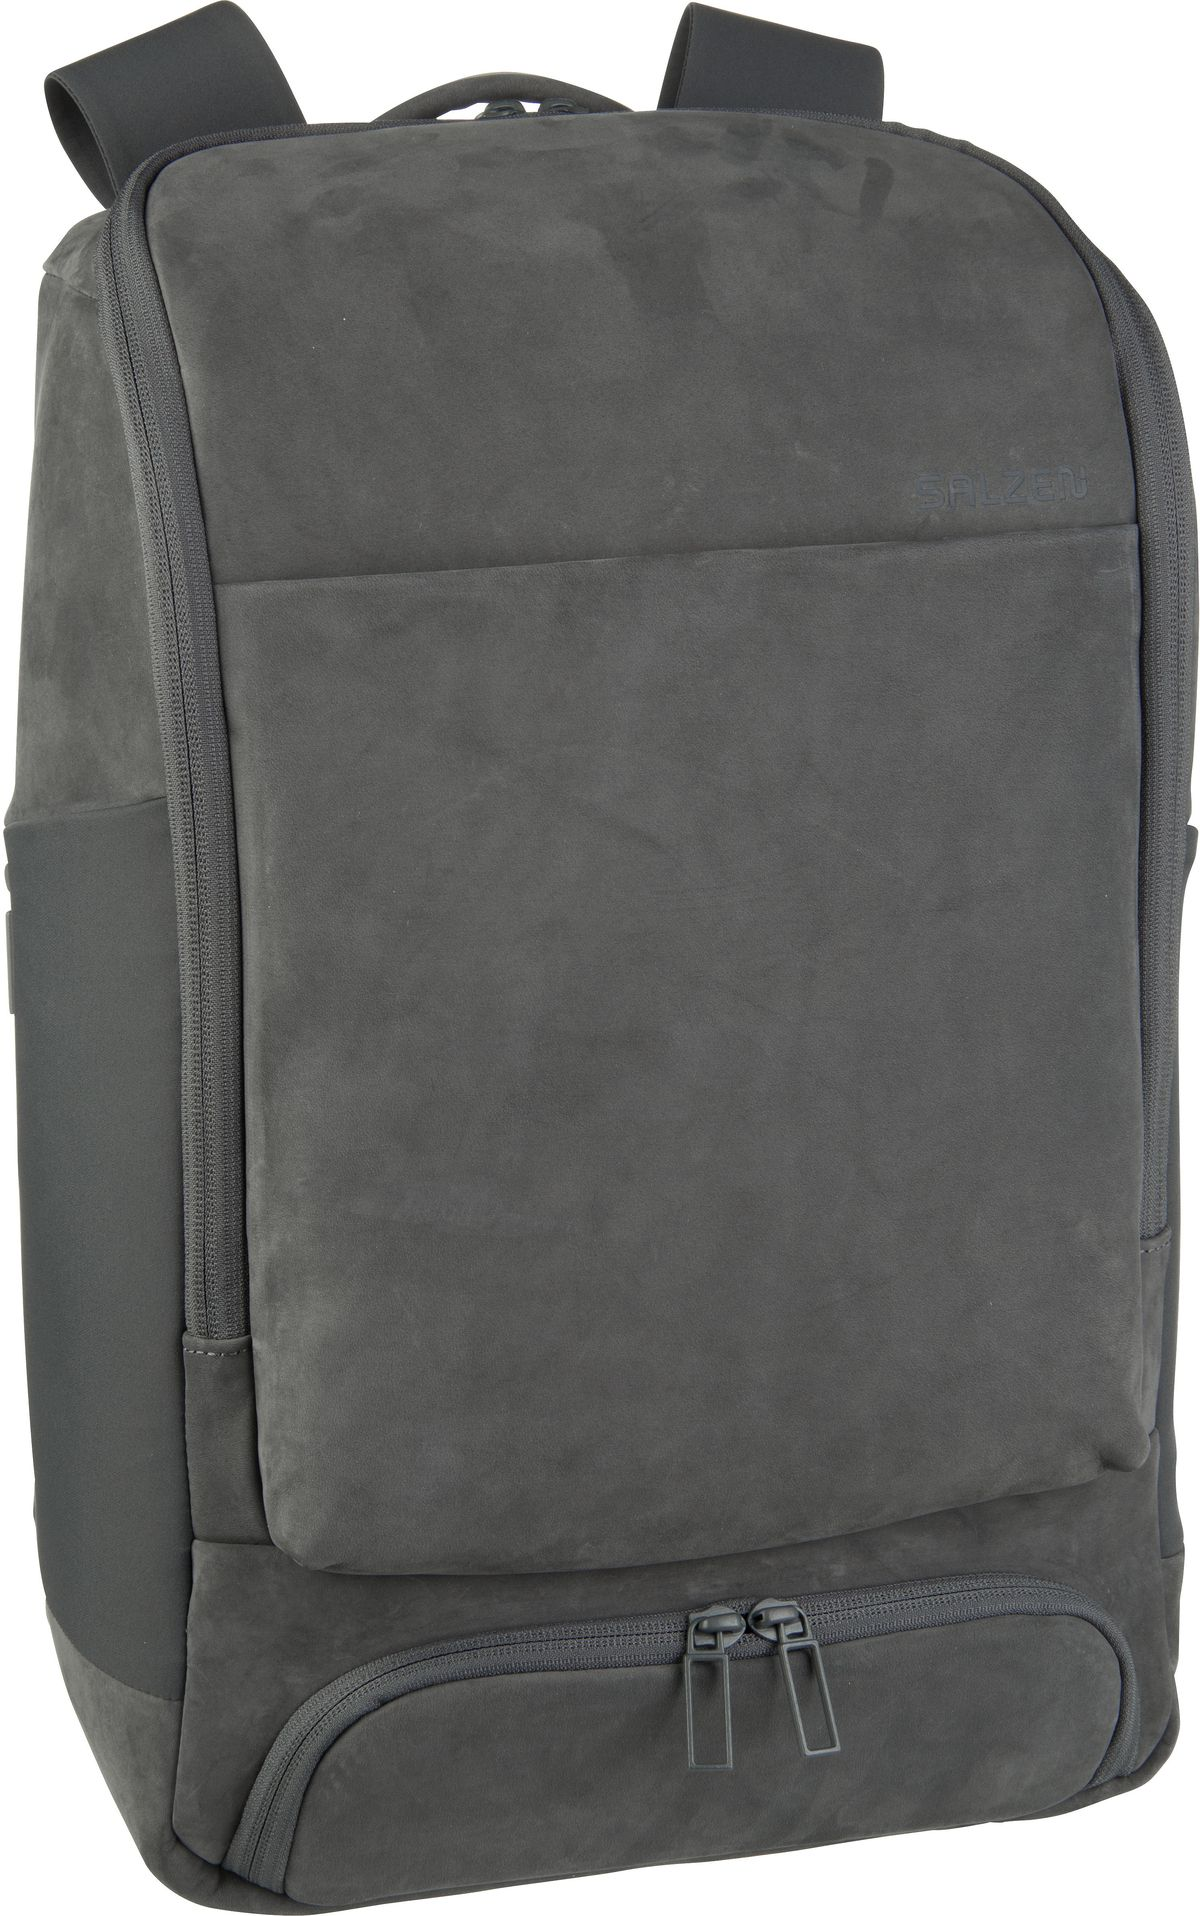 Laptoprucksack Alpha Backpack Leather Slate Grey (17 Liter)